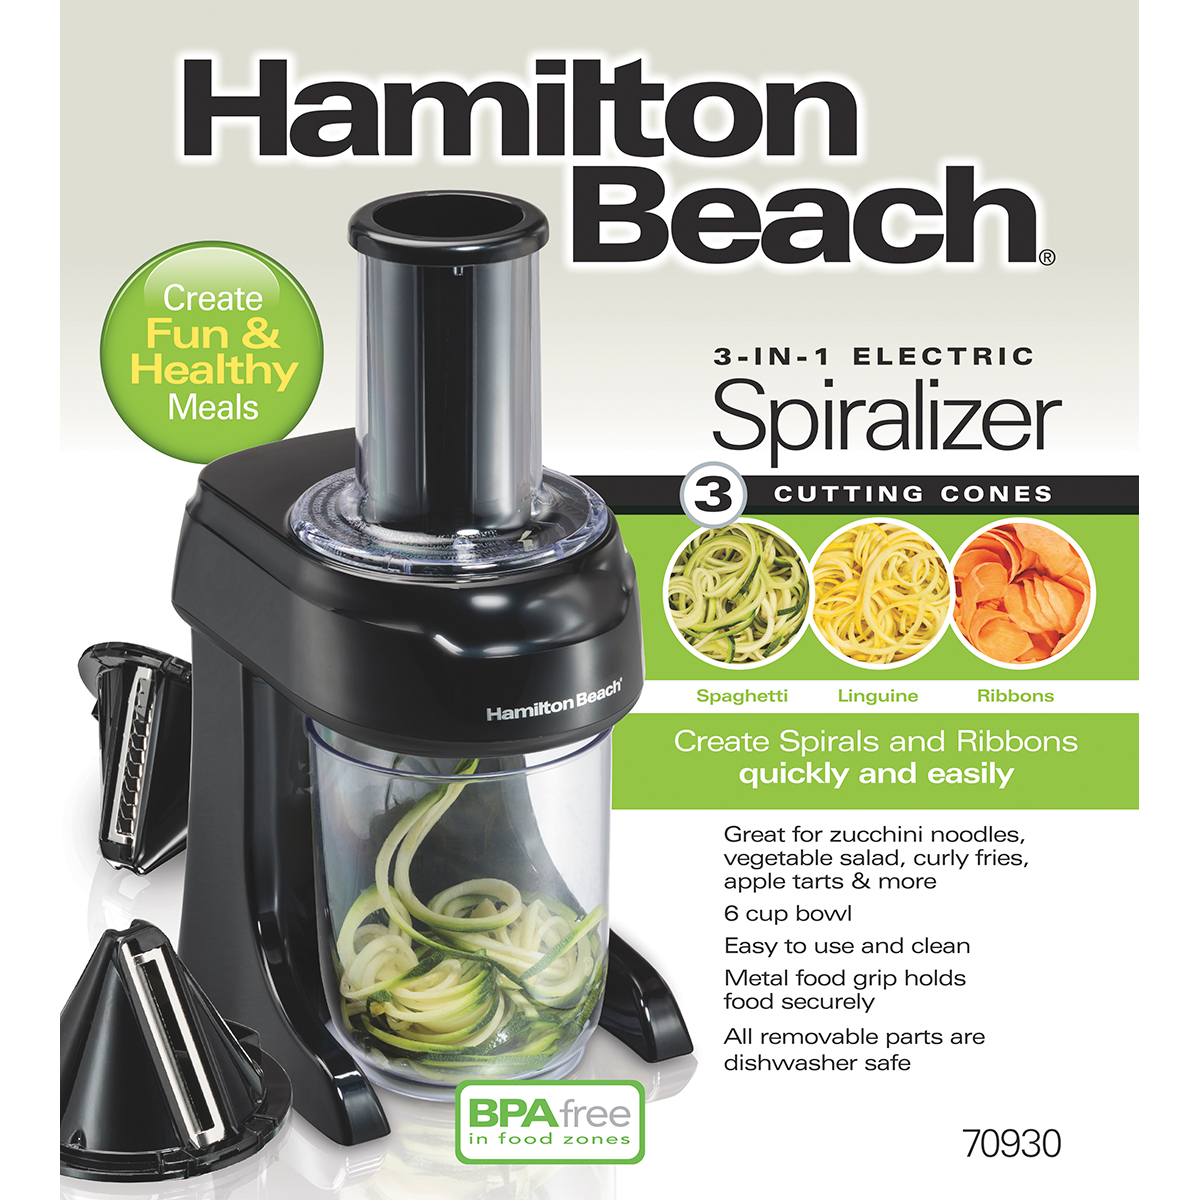 3-in-1 Electric Spiralizer (70930)